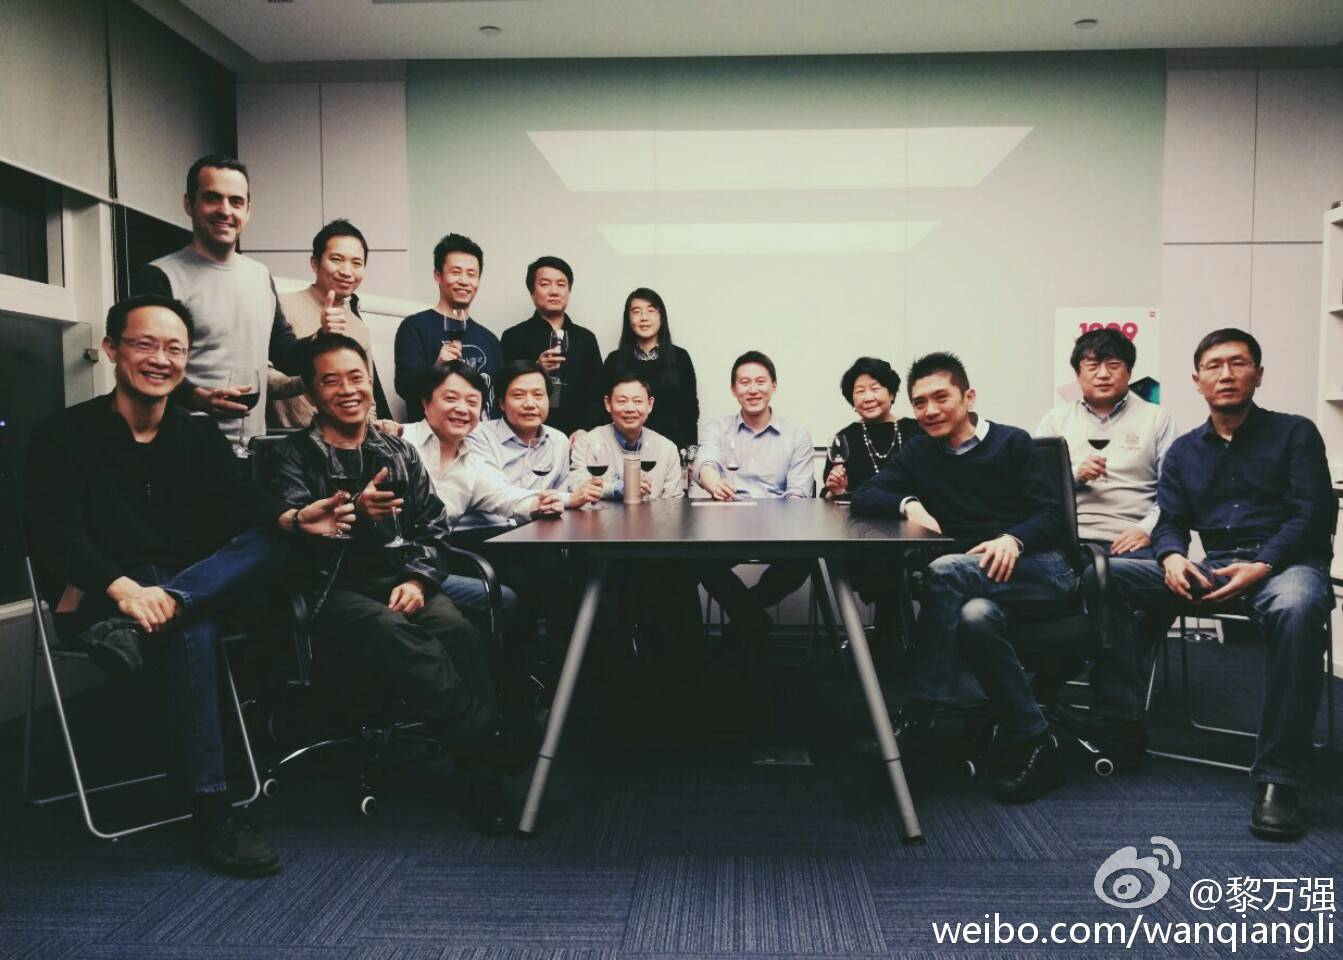 Li Wanqiang returning to xiaomi